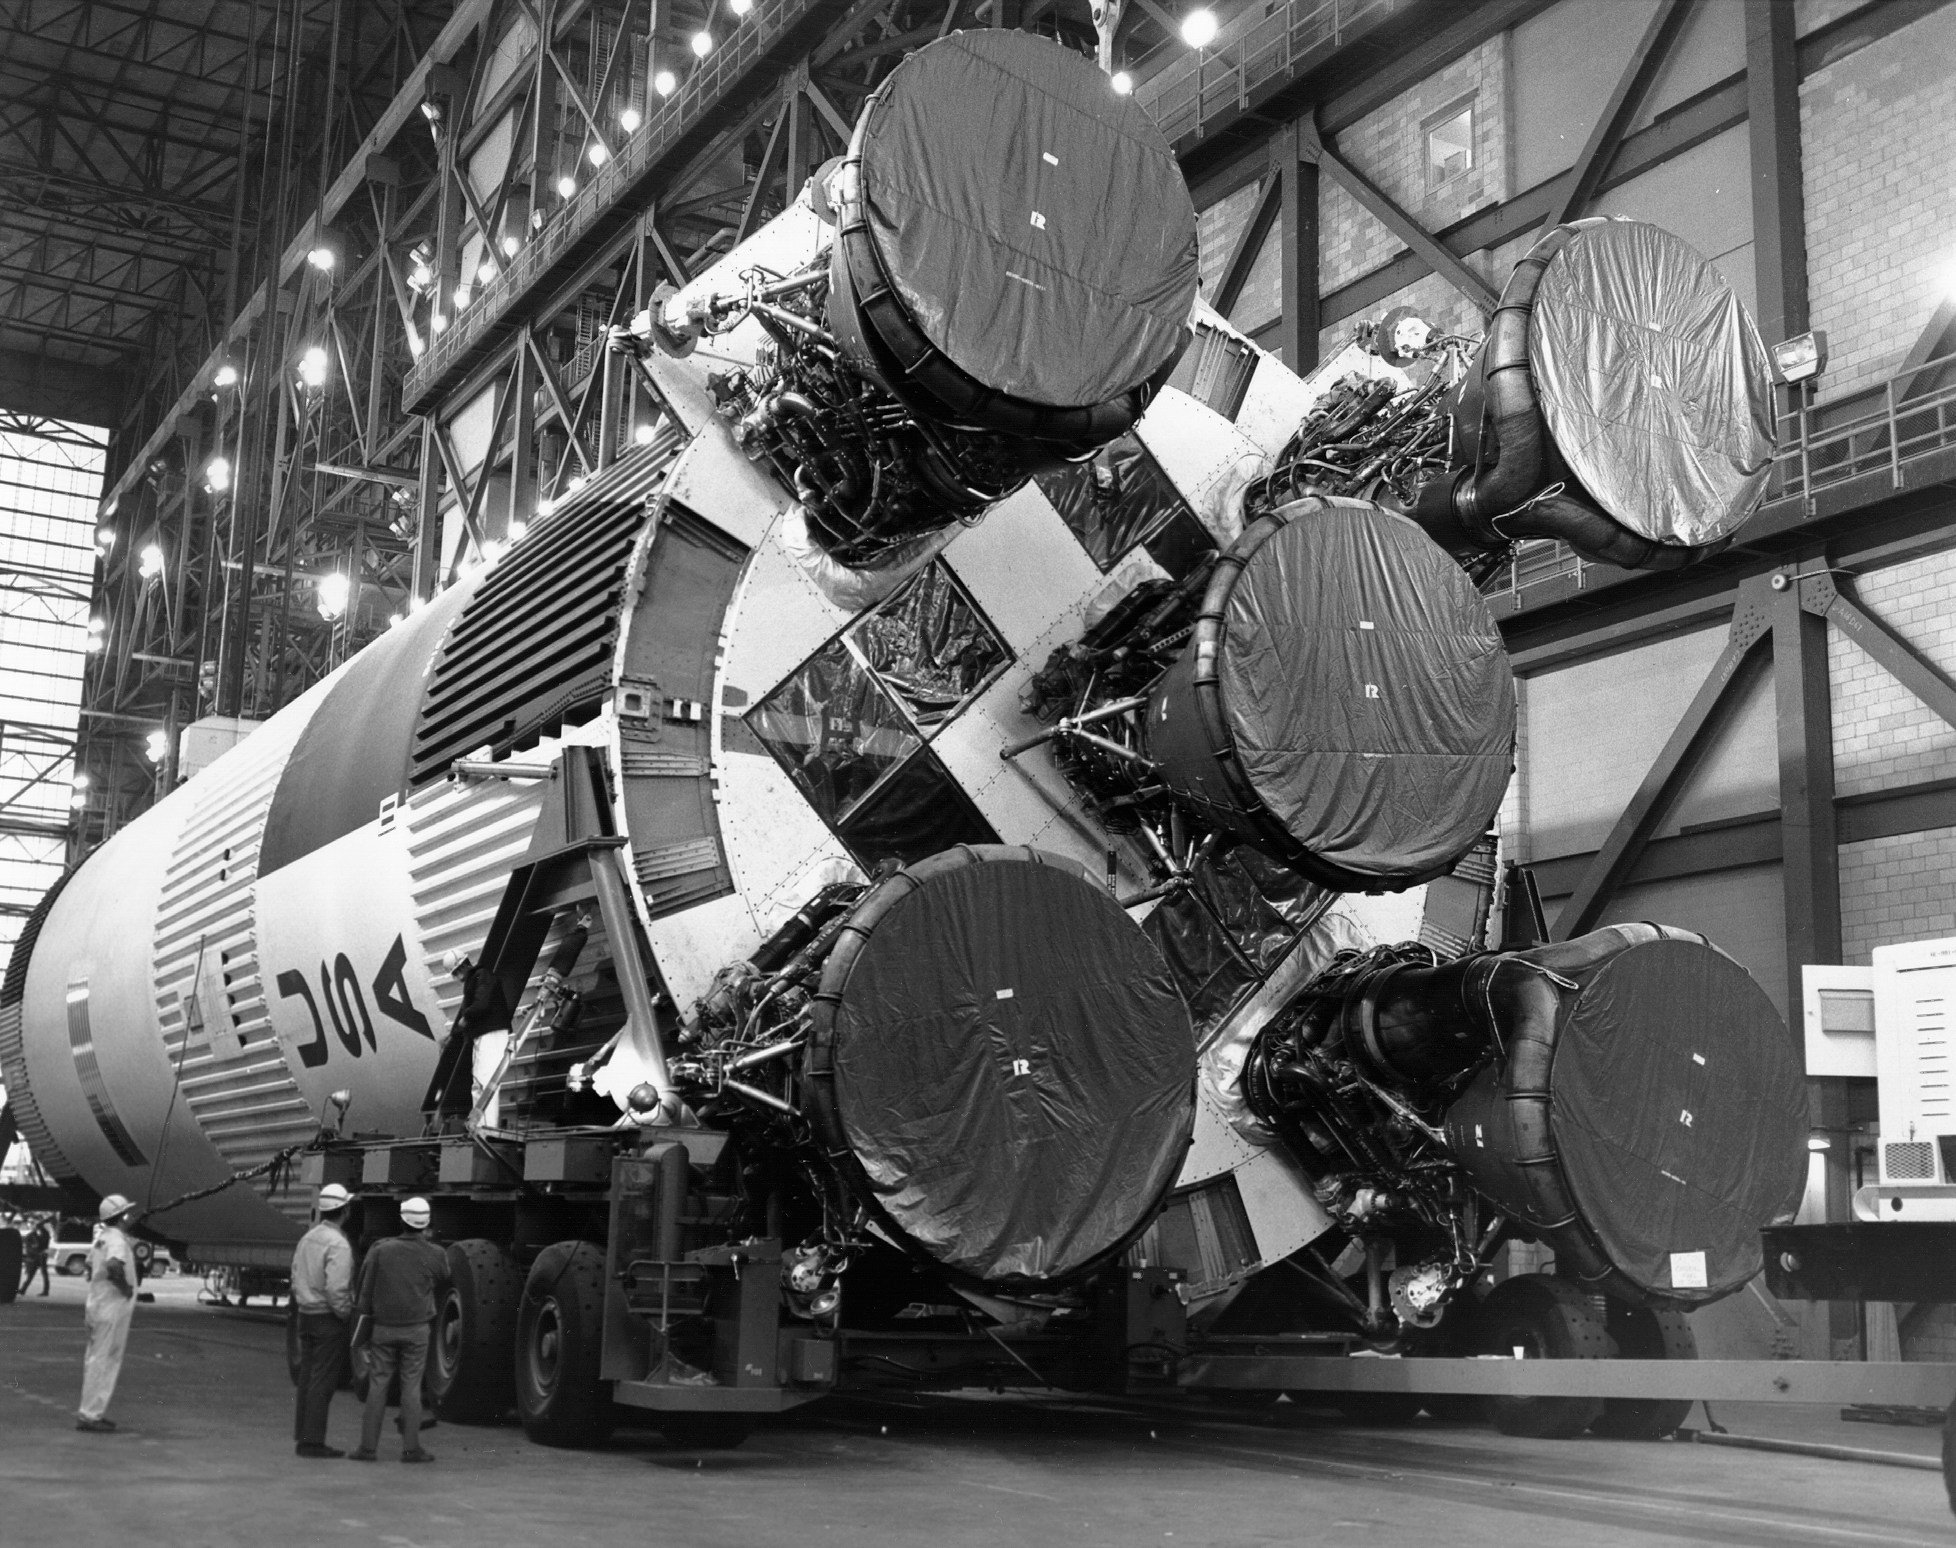 Apollo 11 Image Gallery - Preparing A Moonship